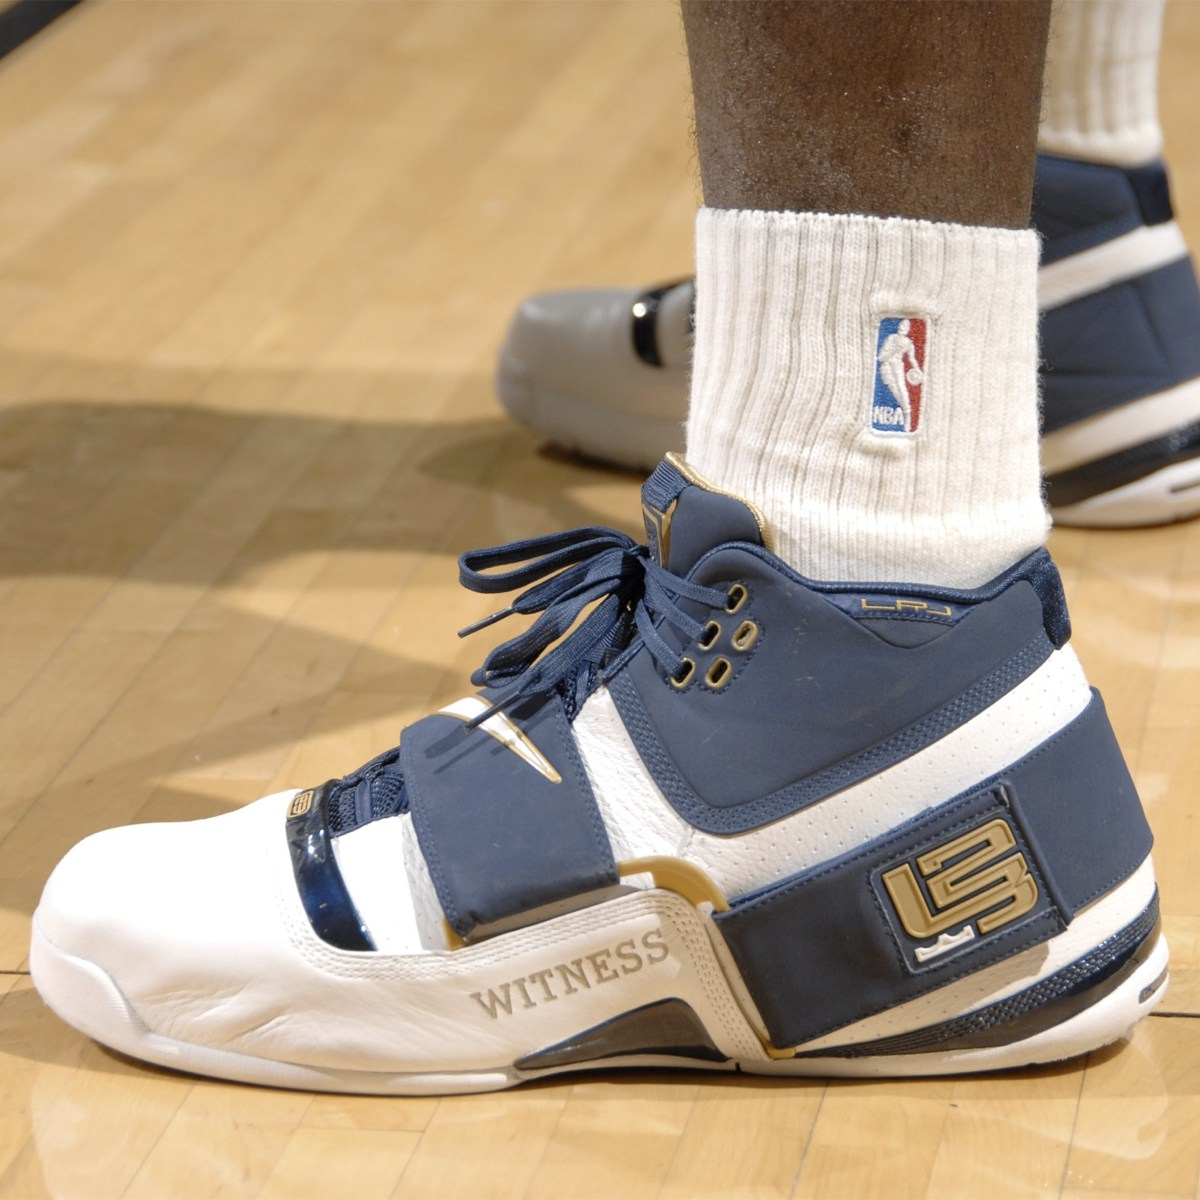 Here's a Detailed Look at the Nike LeBron Soldier 1 From the